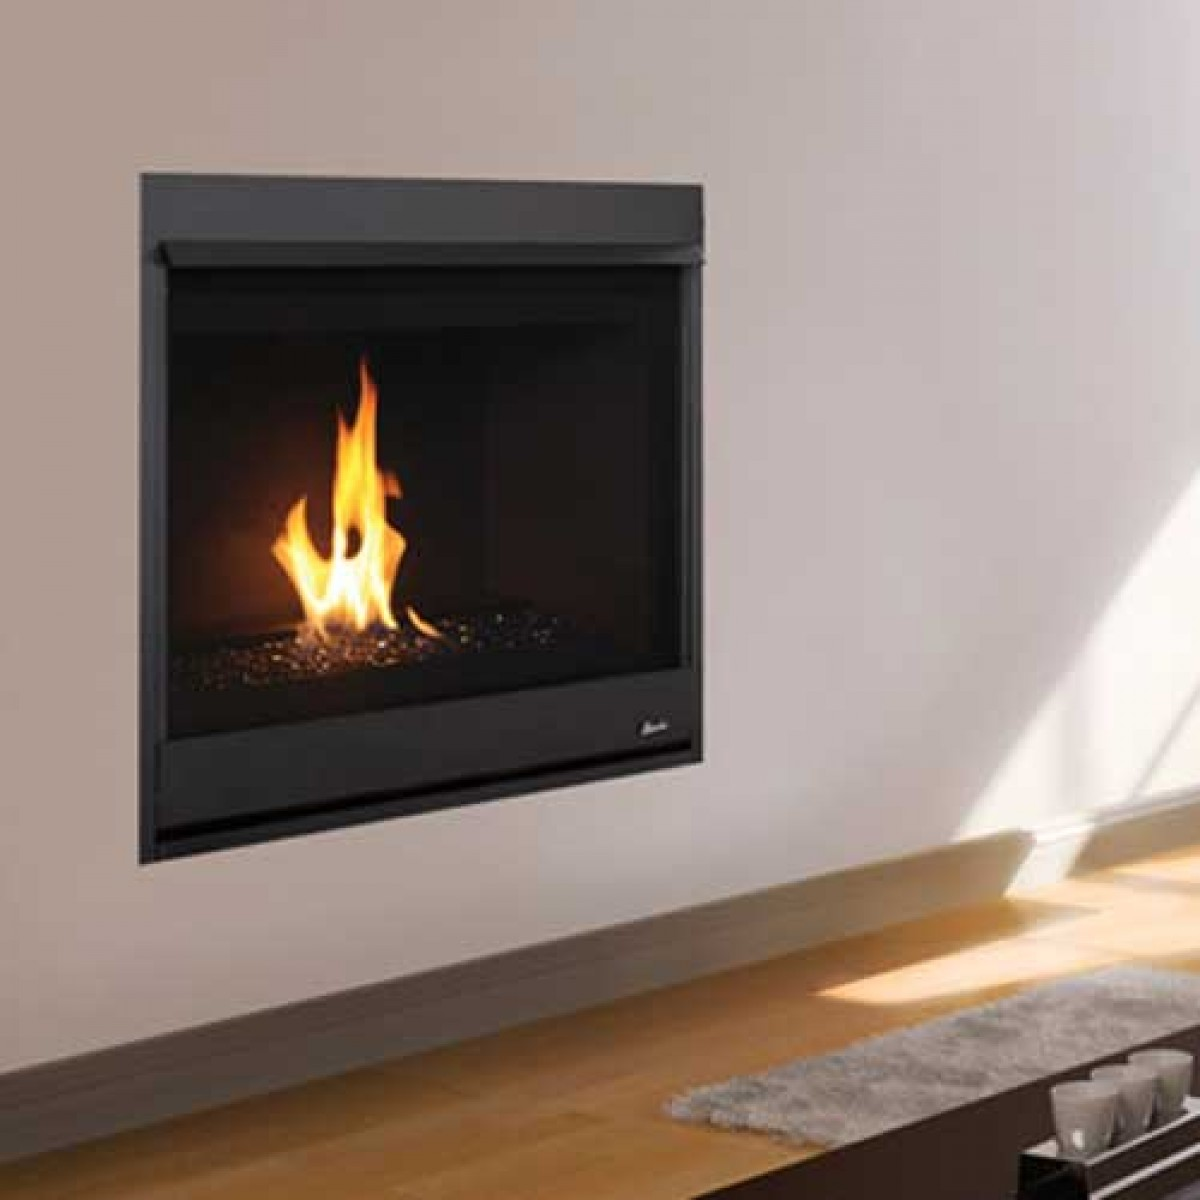 Dimplex Fireplace Costco Electric Home Depot 60 Inch Design Dimplex 23 Inch Convex White Wall